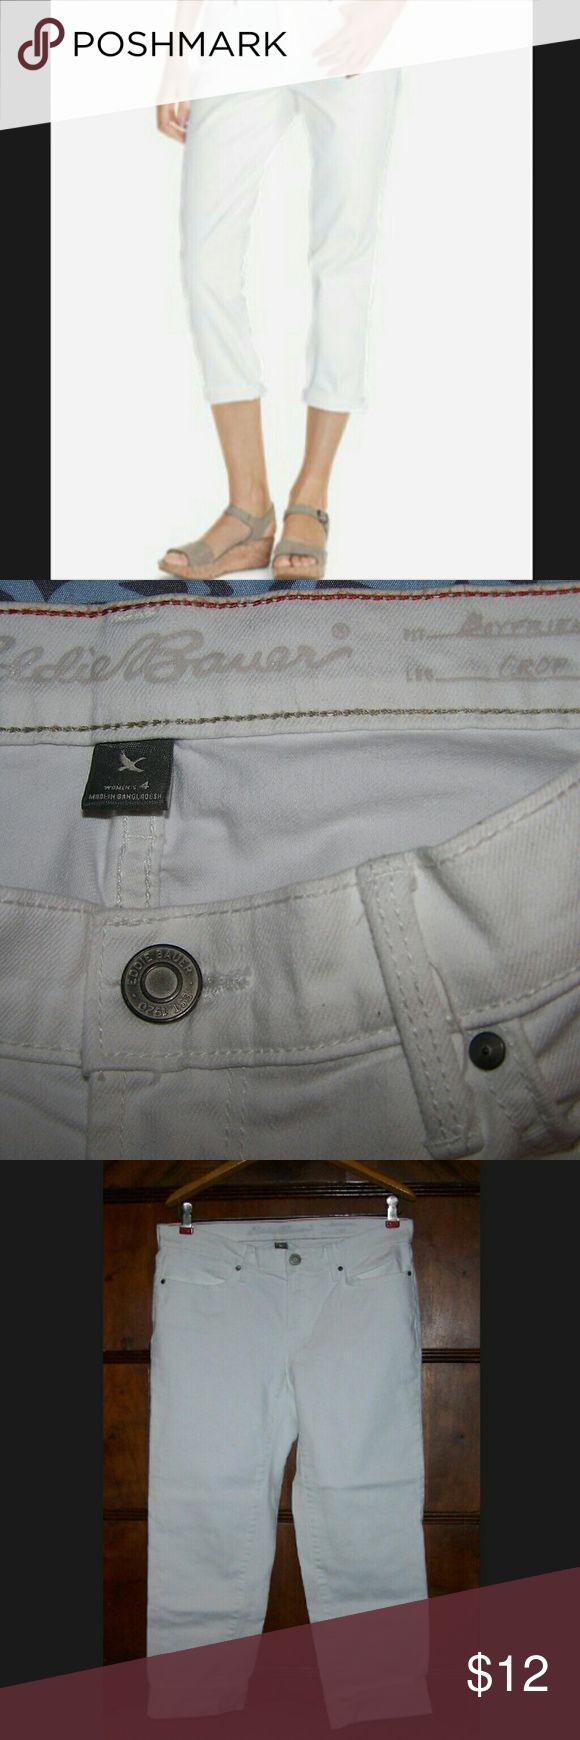 Brand New Eddie Bauer Boyfriend Cropped Jeans Brand new never worn or tried on, only removed from plastic for photos.  In perfect condition.  No marks or discoloration at all.  Boyfriend fit is more loose in the hips than regular women's jeans.  Very comfortable, perfect for summer!    OFFERS AND BUNDLES ALWAYS WELCOMED!  HAPPY POSHING! Eddie Bauer Jeans Ankle & Cropped